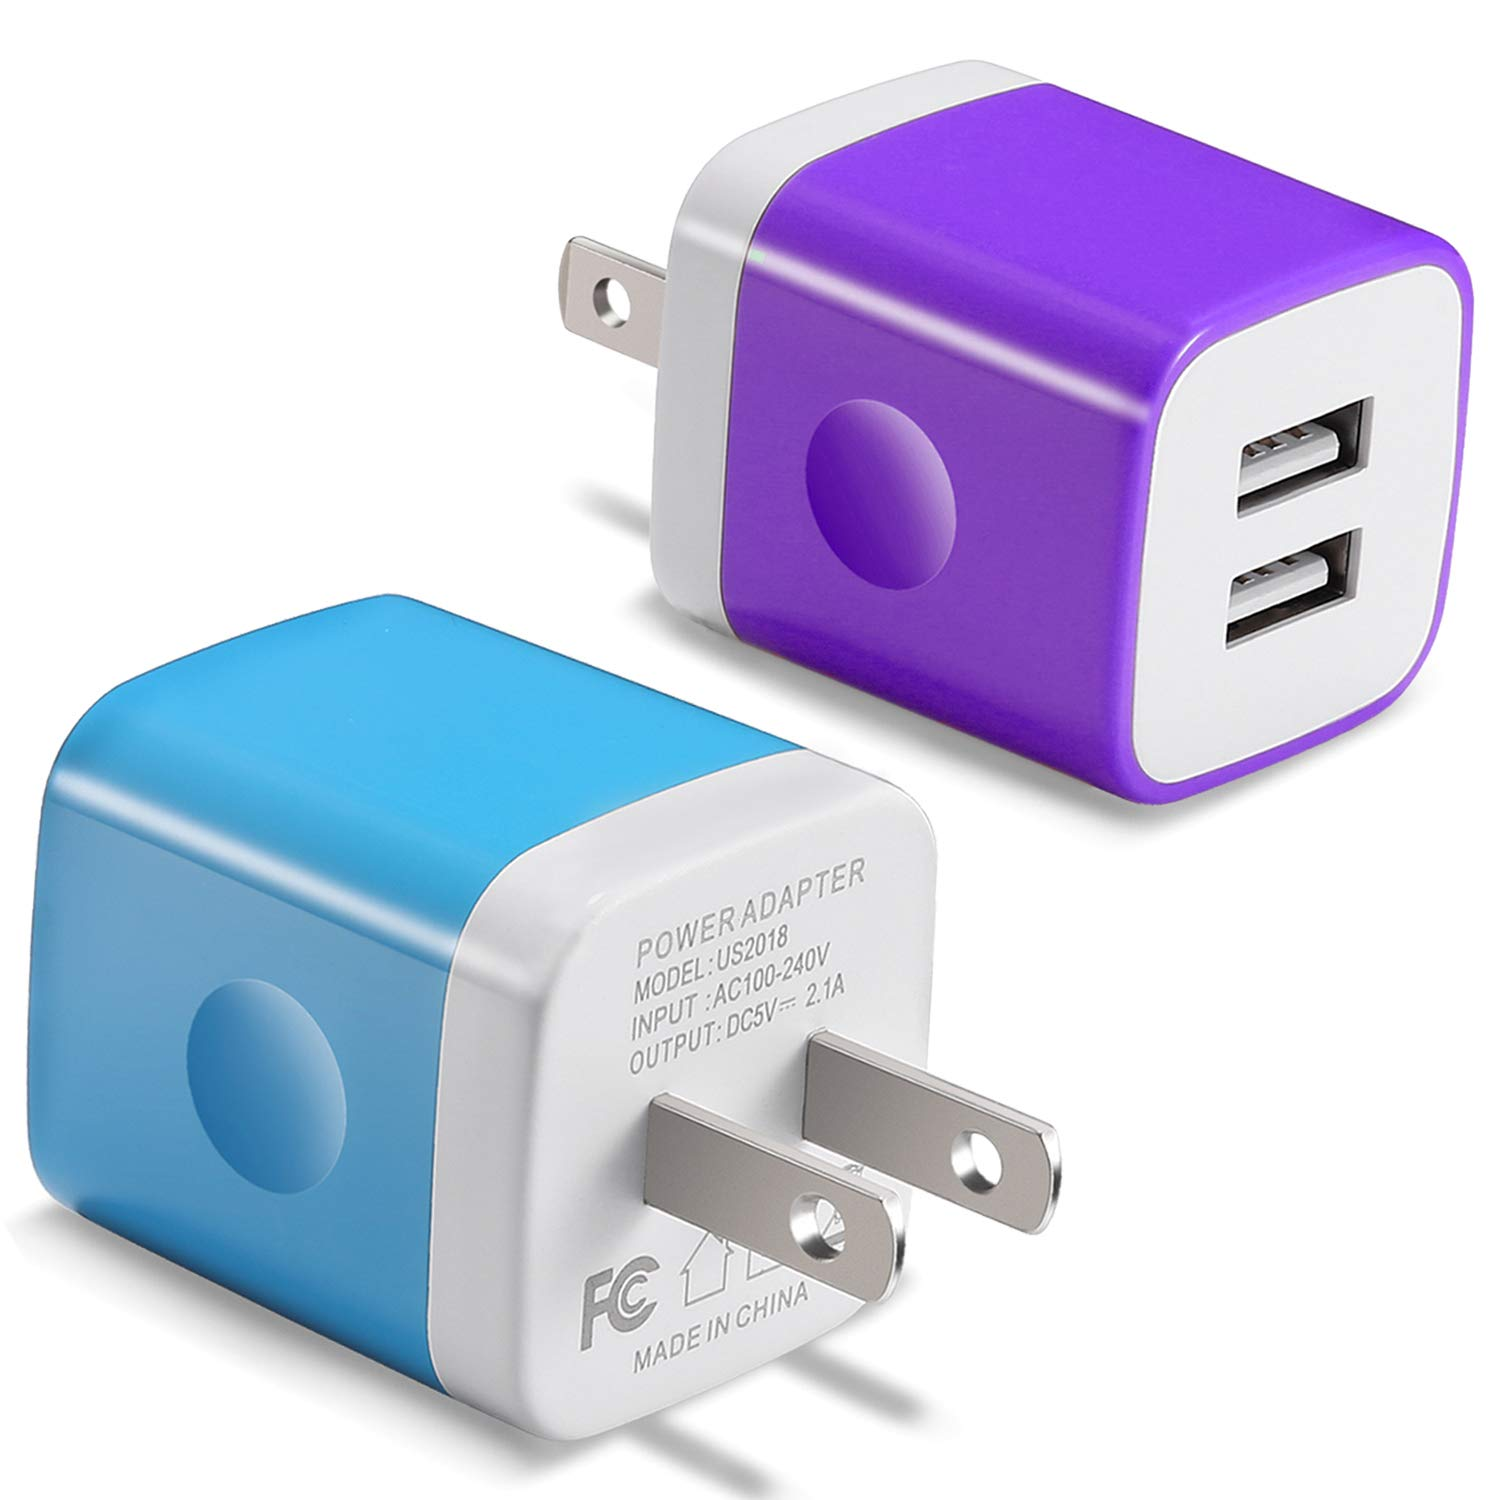 USB Wall Charger, BEST4ONE 2 1A/5V Dual Port USB Plug Power Adapter  Charging Block Compatible with Moto, iPhone X/8/7/6, Samsung, LG, More Cell  Phone